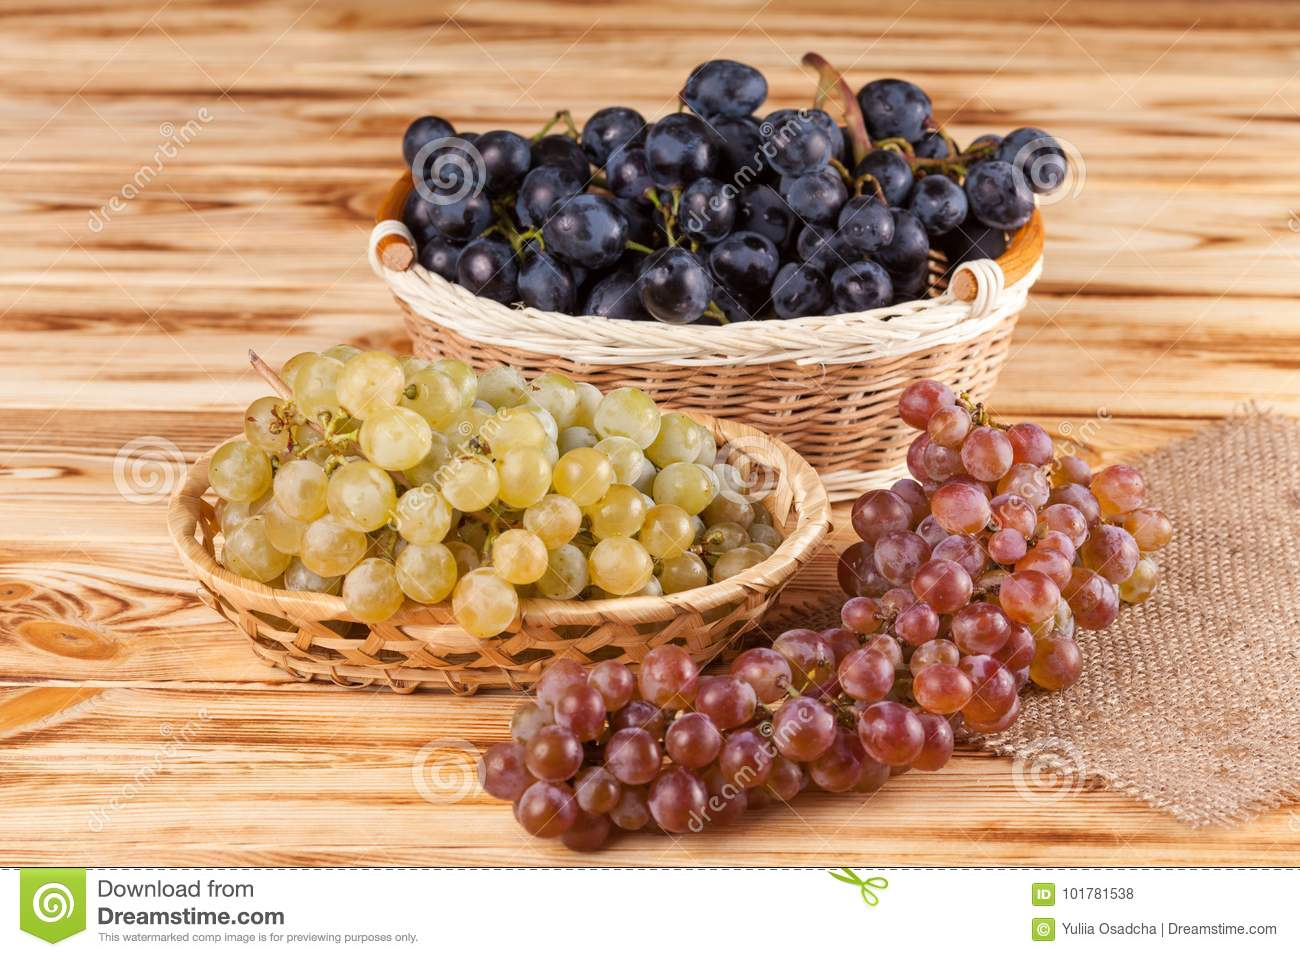 Bunches of fresh ripe blue grapes in wicker basket on piece of sackcloth on a wooden textured backdrop. Beautiful background with